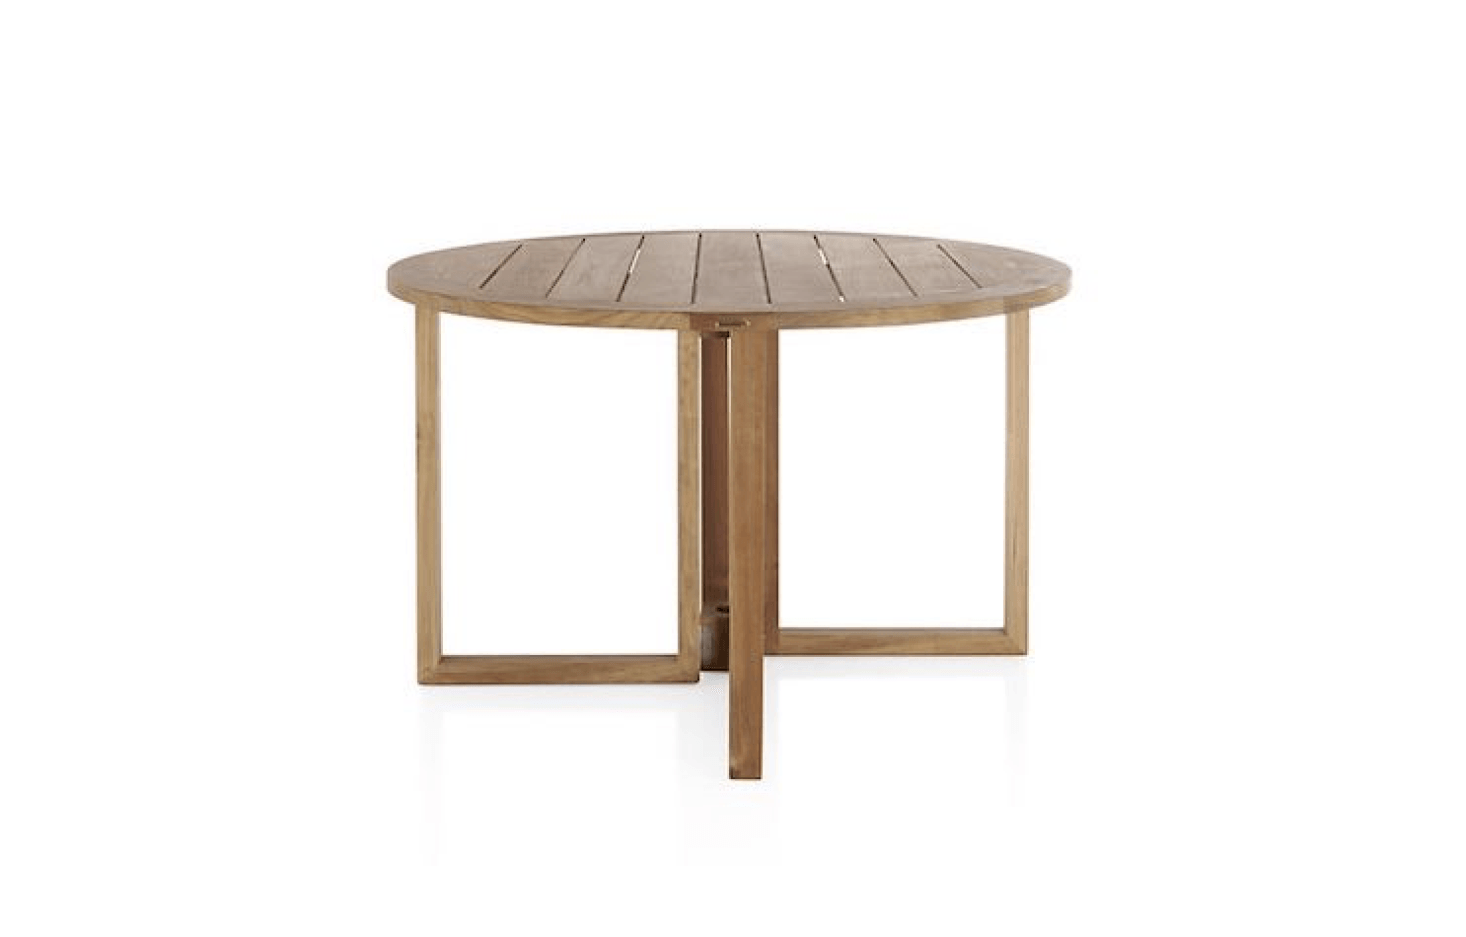 10 easy pieces round wood dining tables gardenista. Black Bedroom Furniture Sets. Home Design Ideas